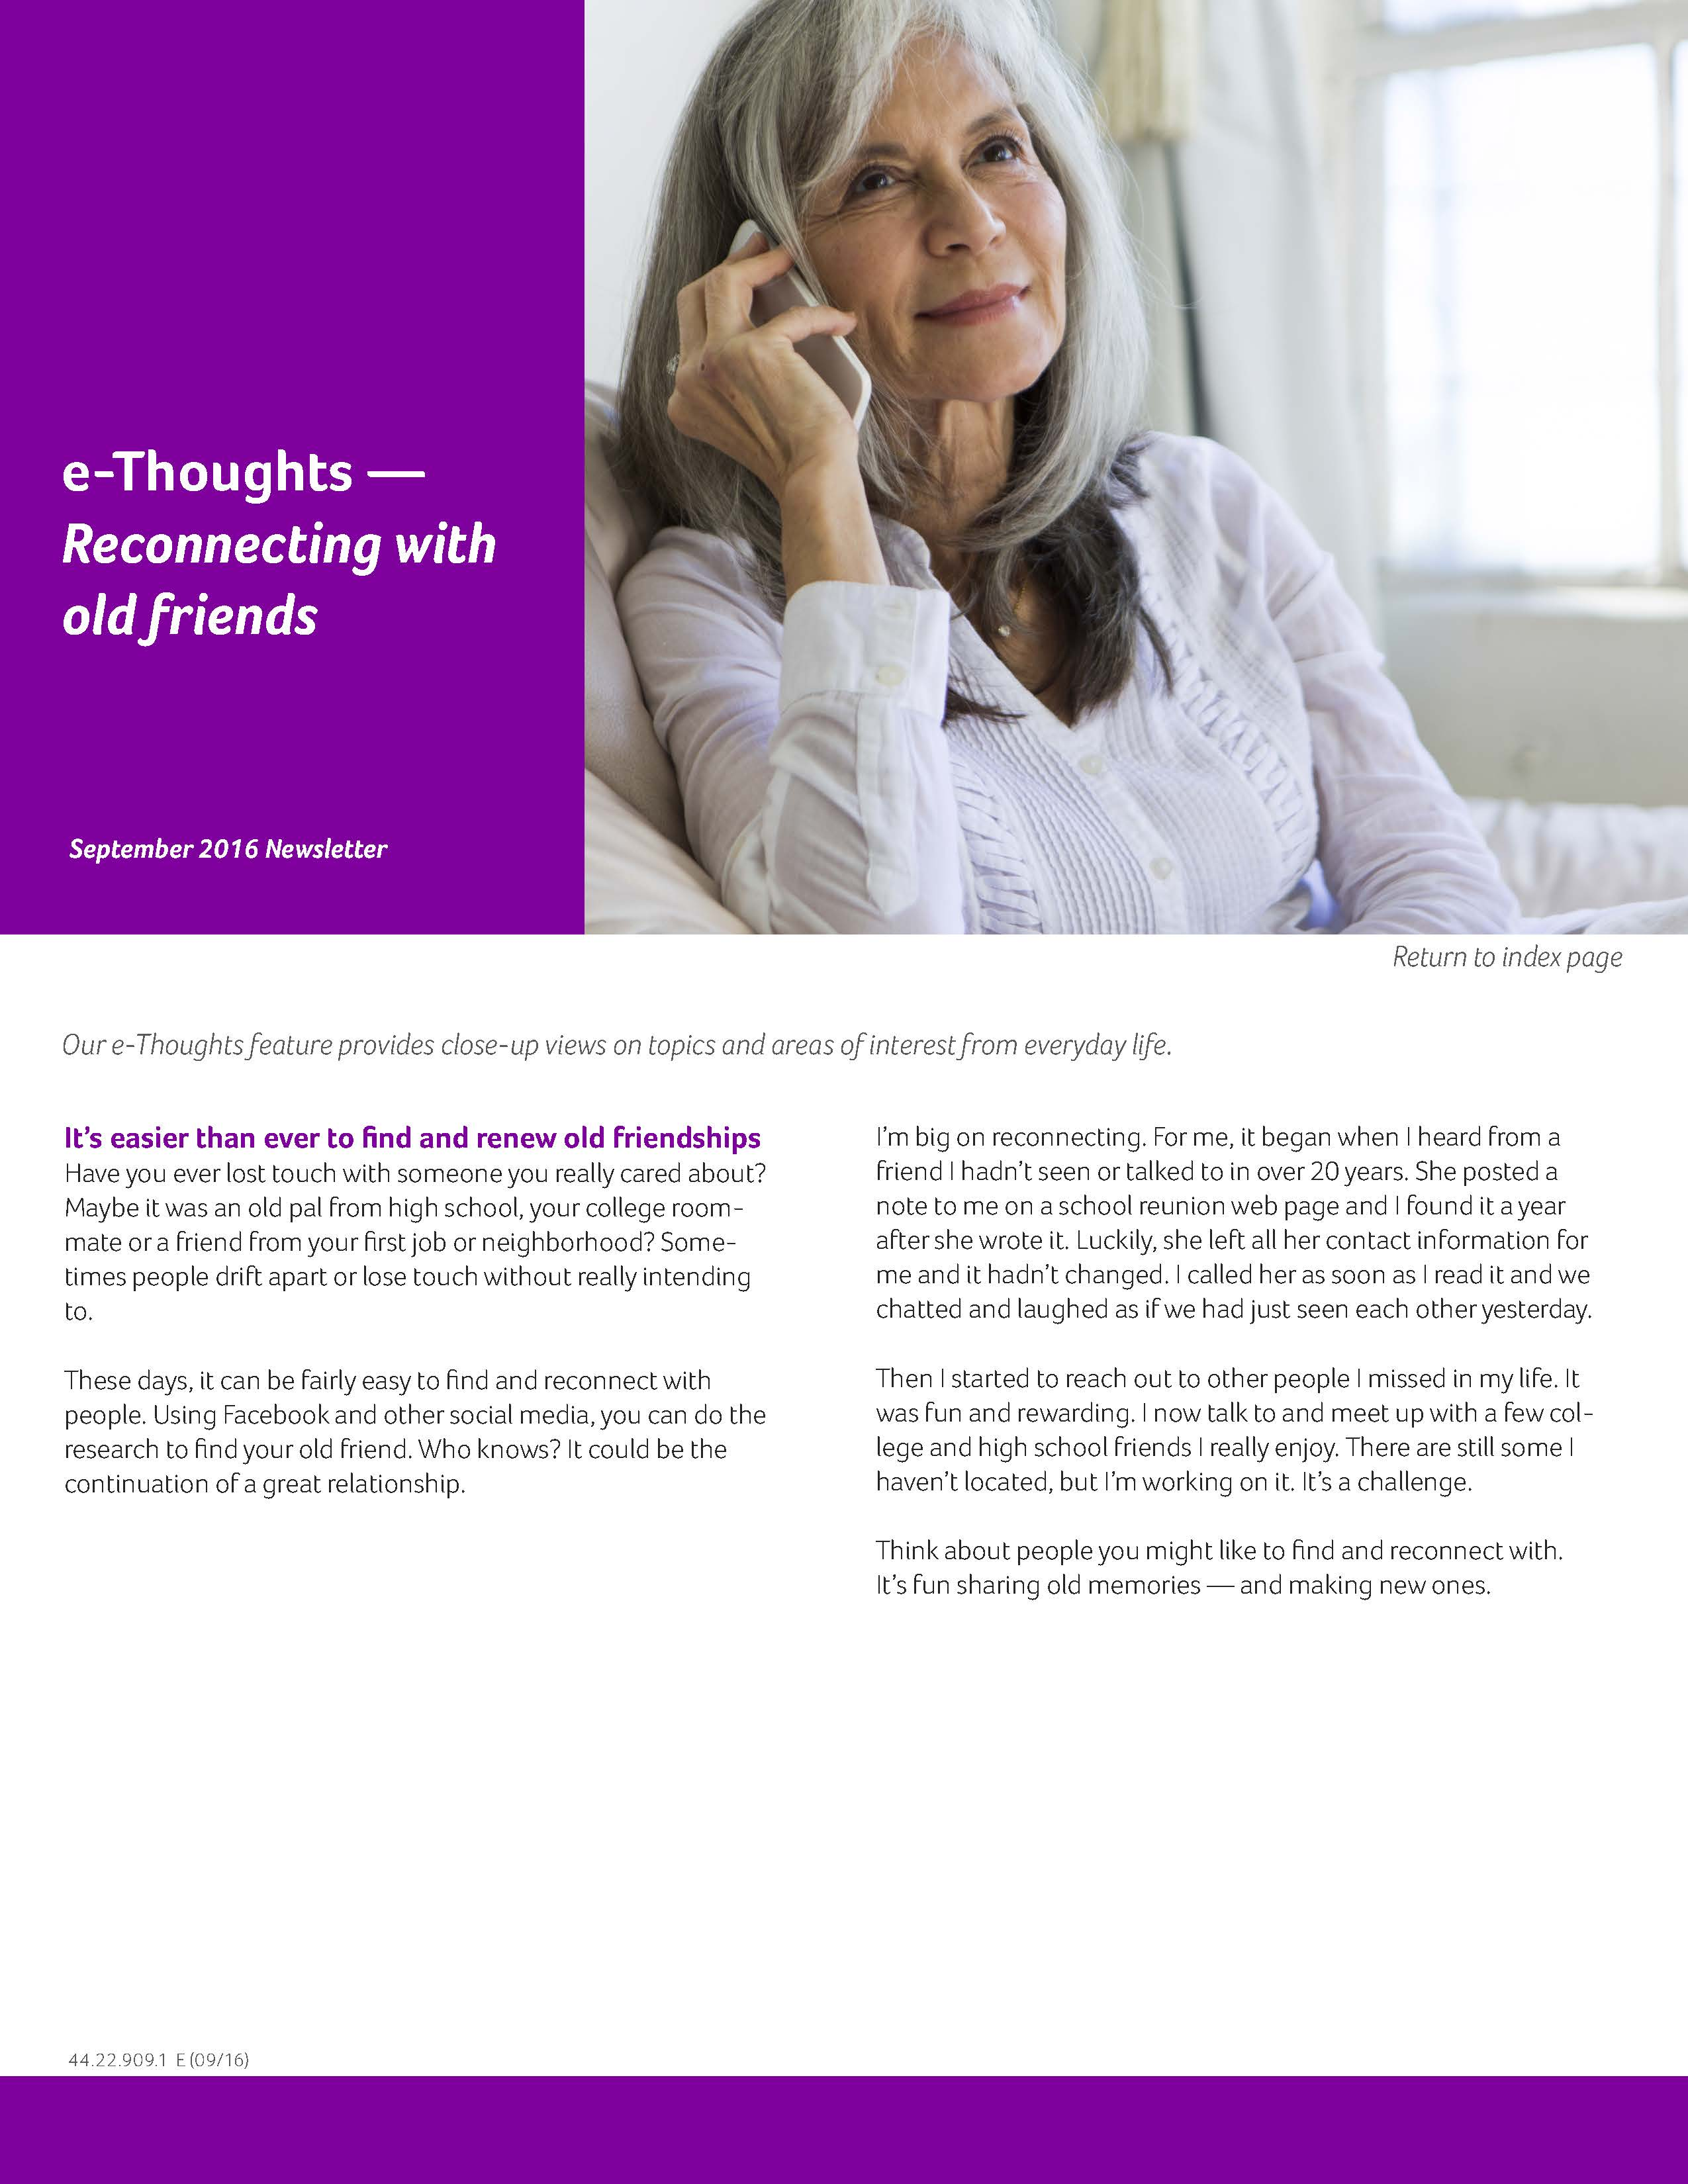 Sep16_MonthlyBulletin_NB_e-Thoughts Connecting